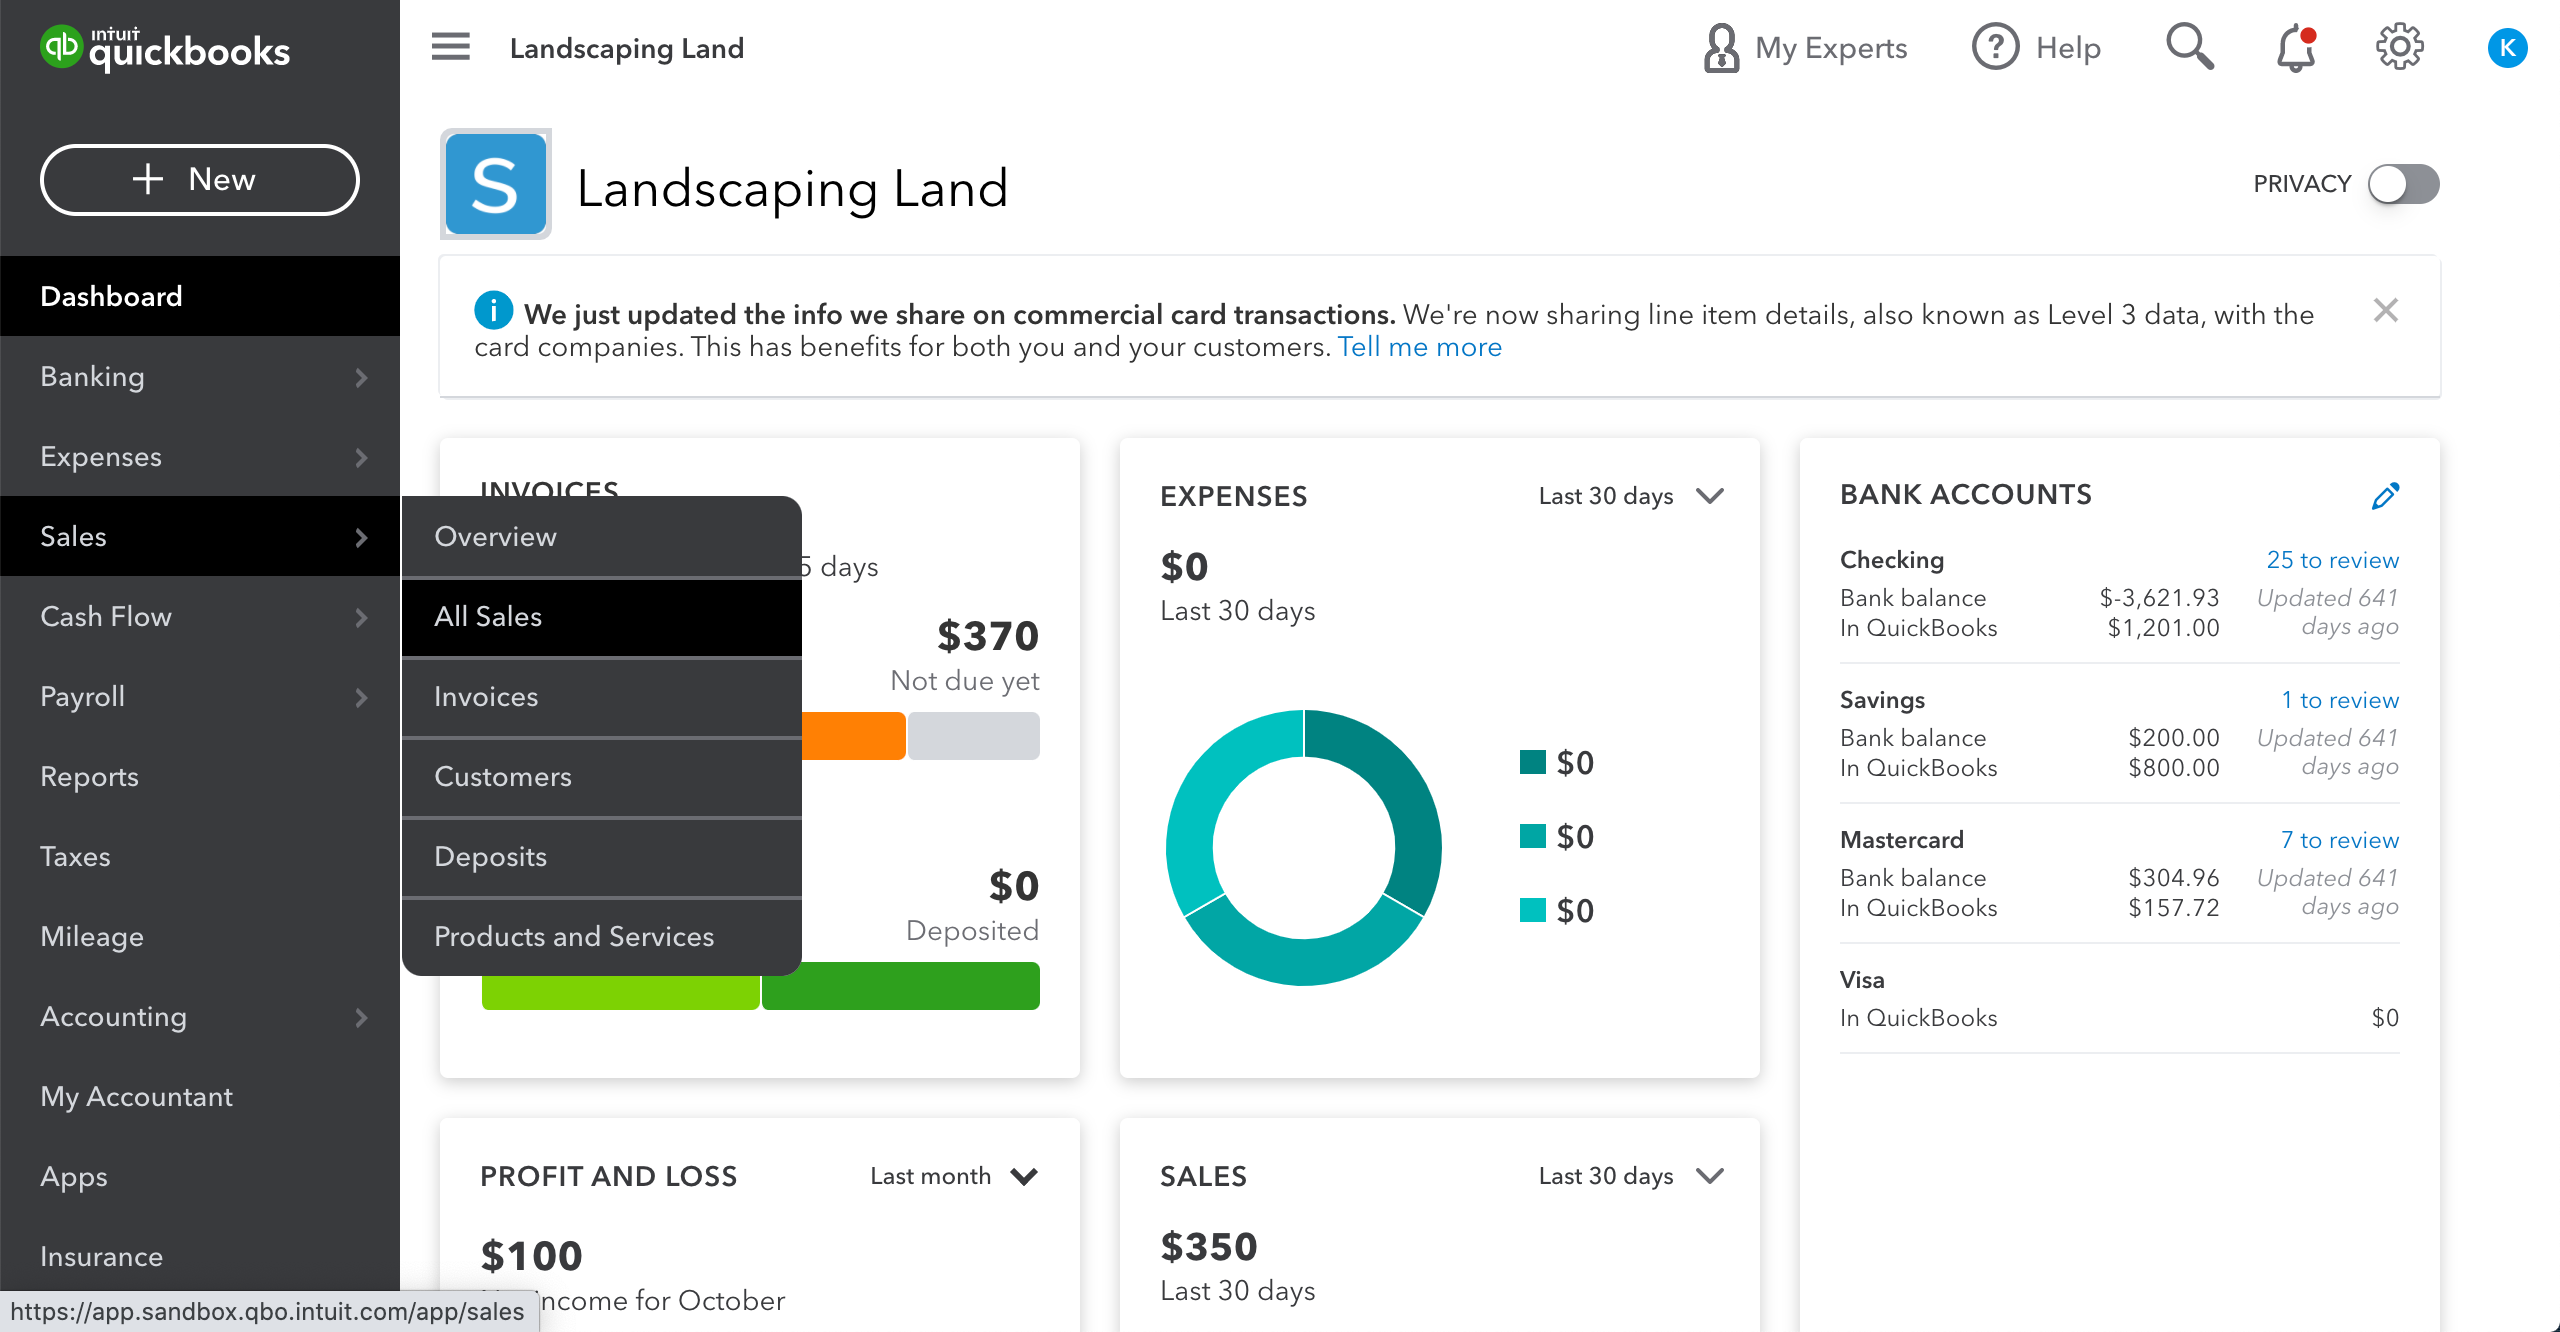 quickbooks-dashboard-all-sales.png